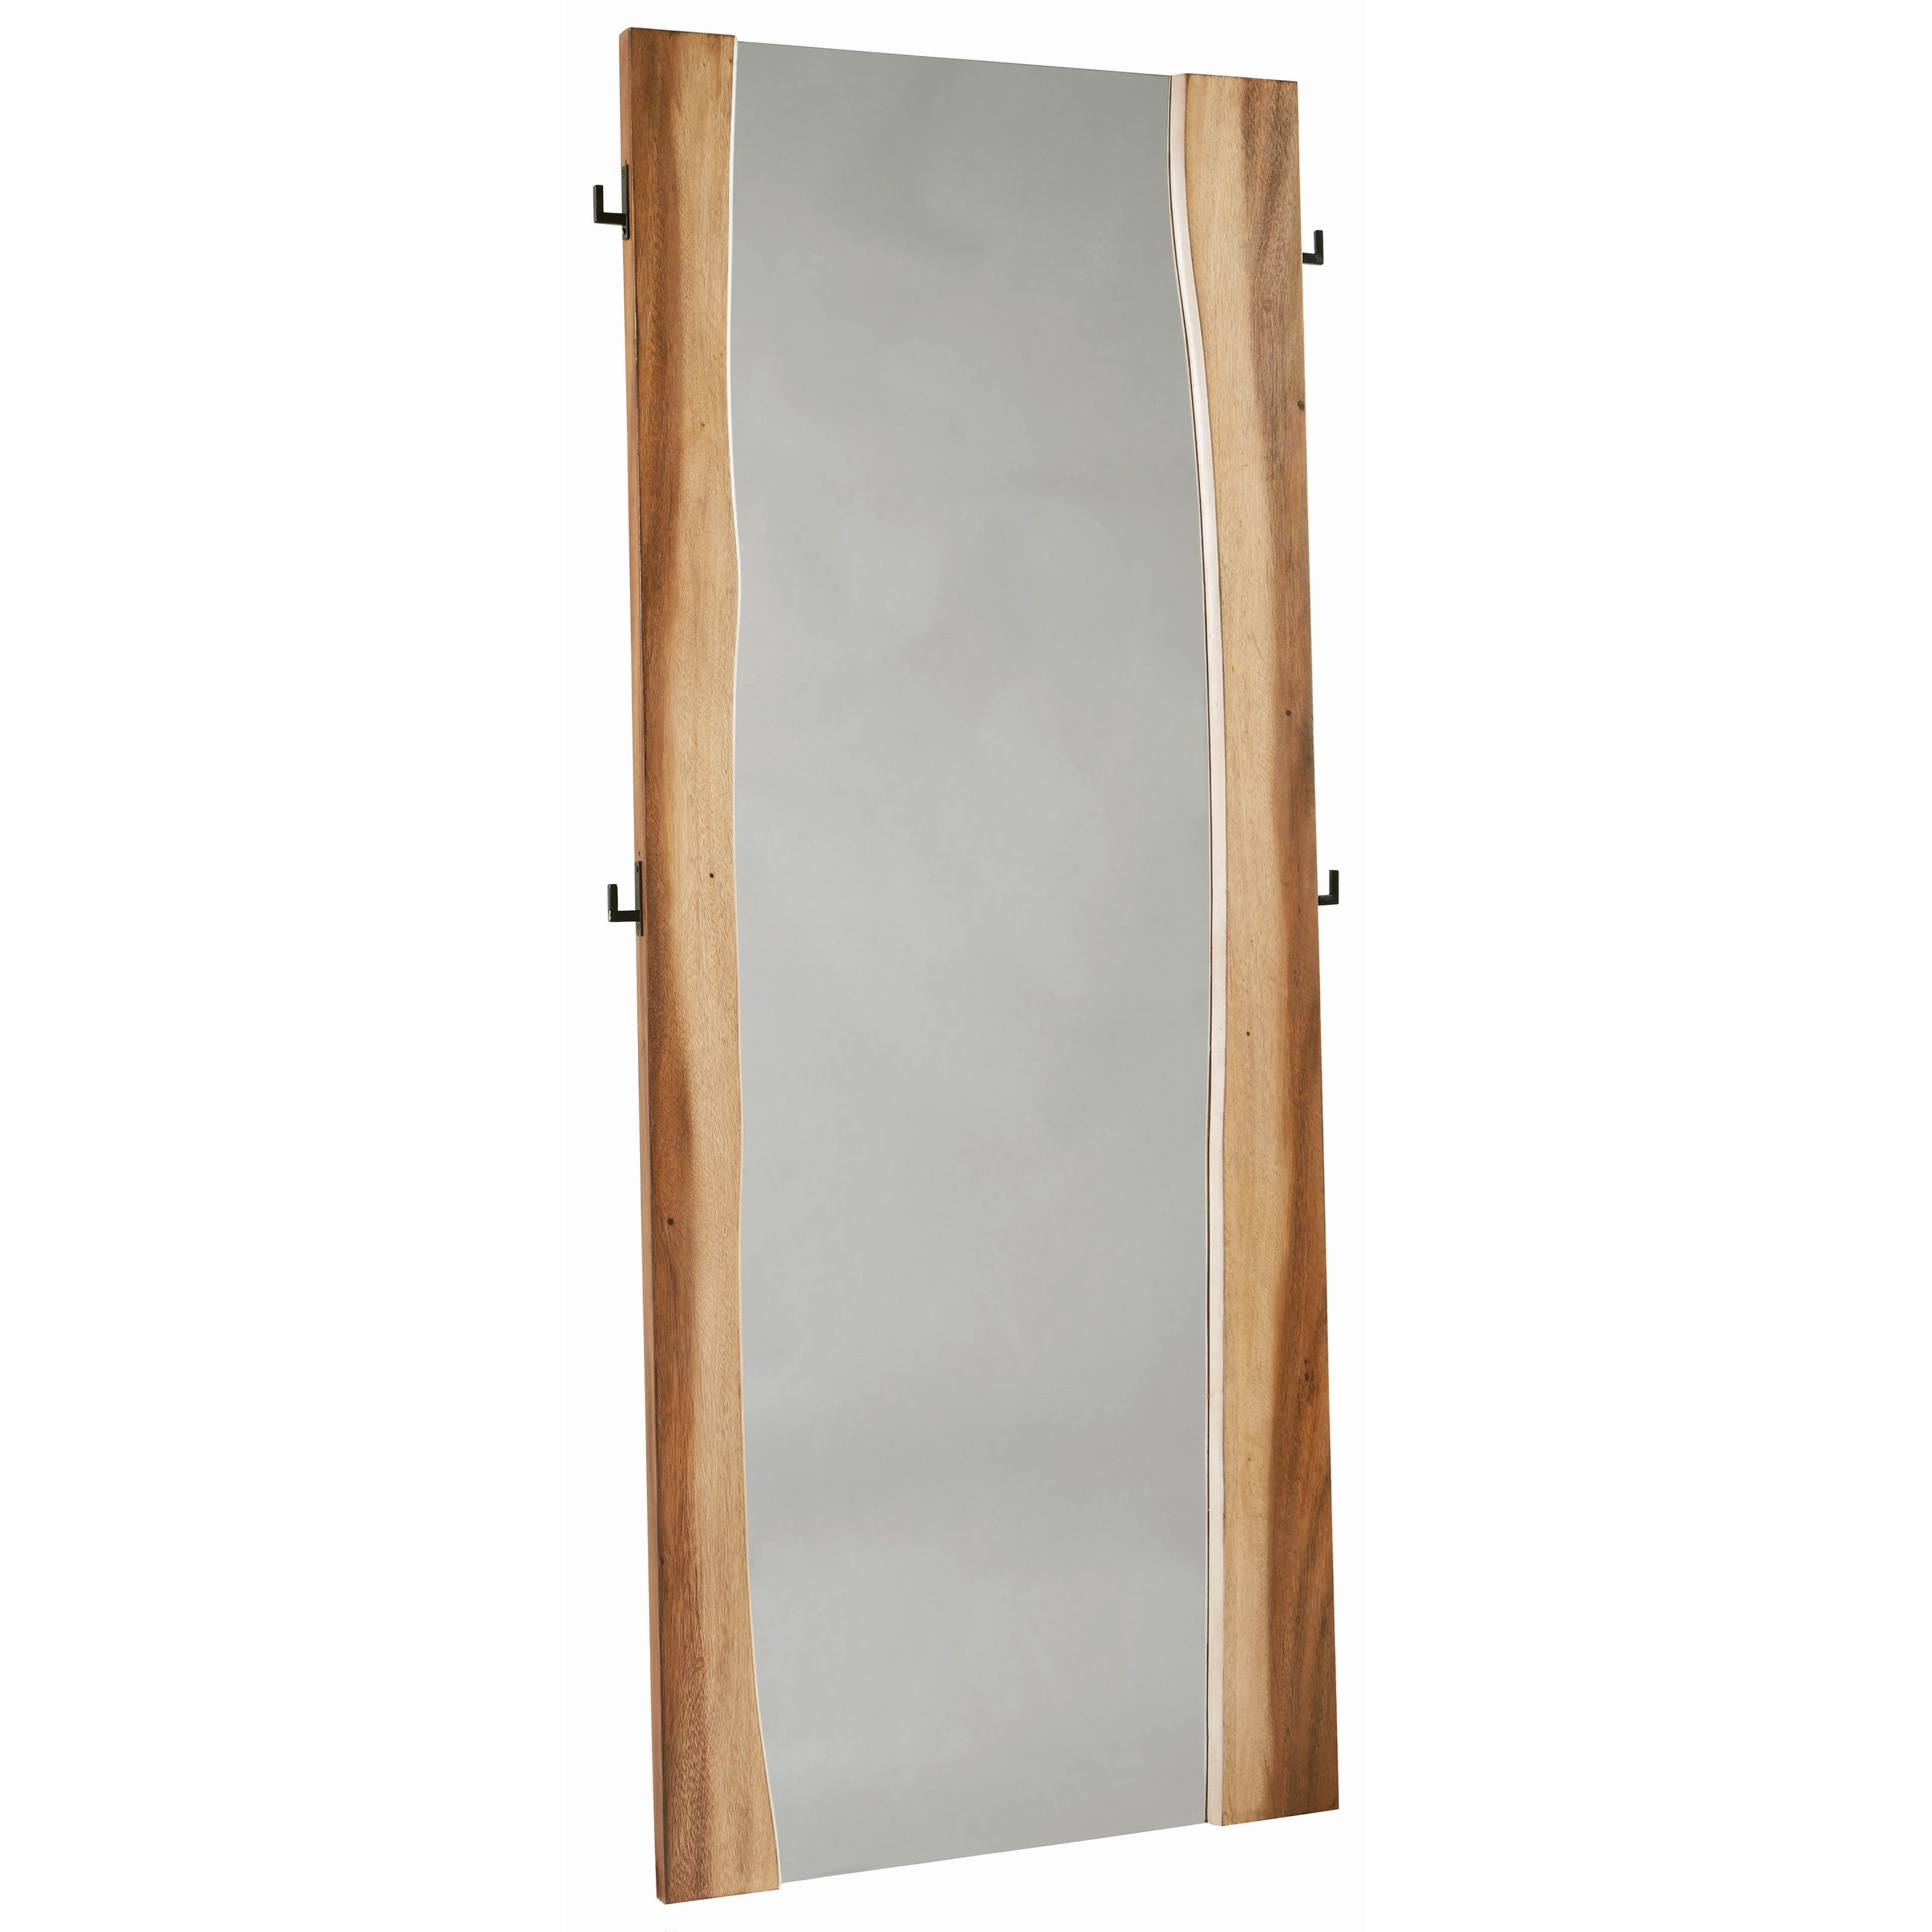 Winslow Standing Mirror by Coaster at Northeast Factory Direct